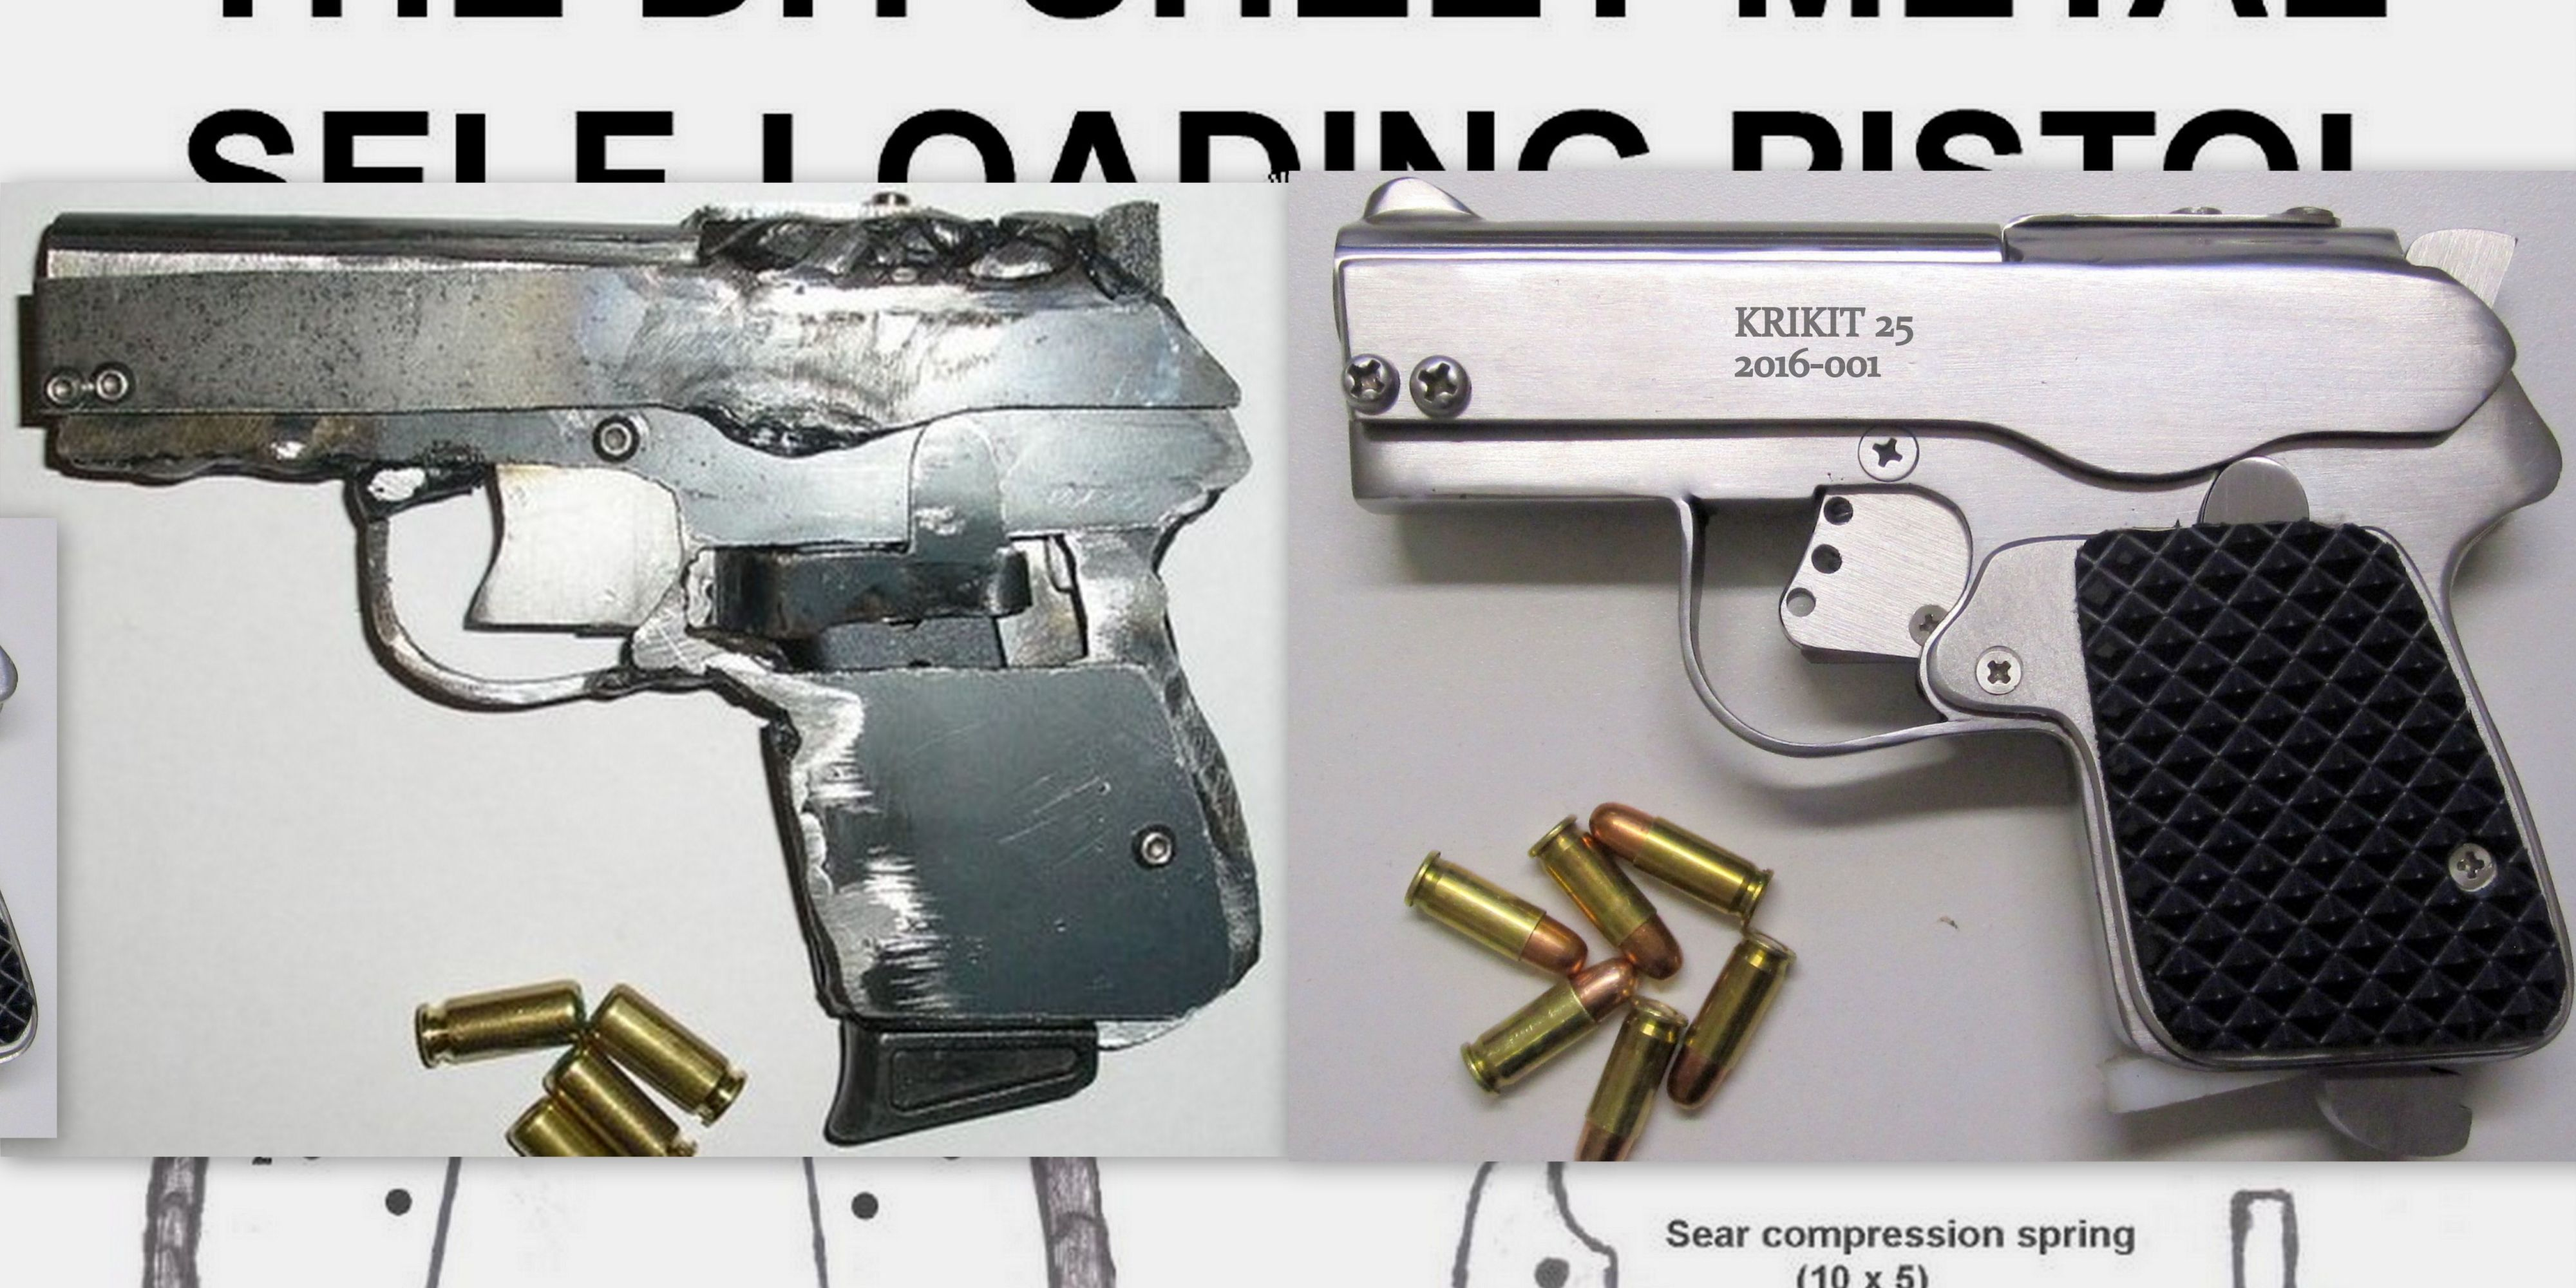 Watch a DIY Semi-Auto Pistol Built From Scratch With Basic Tools